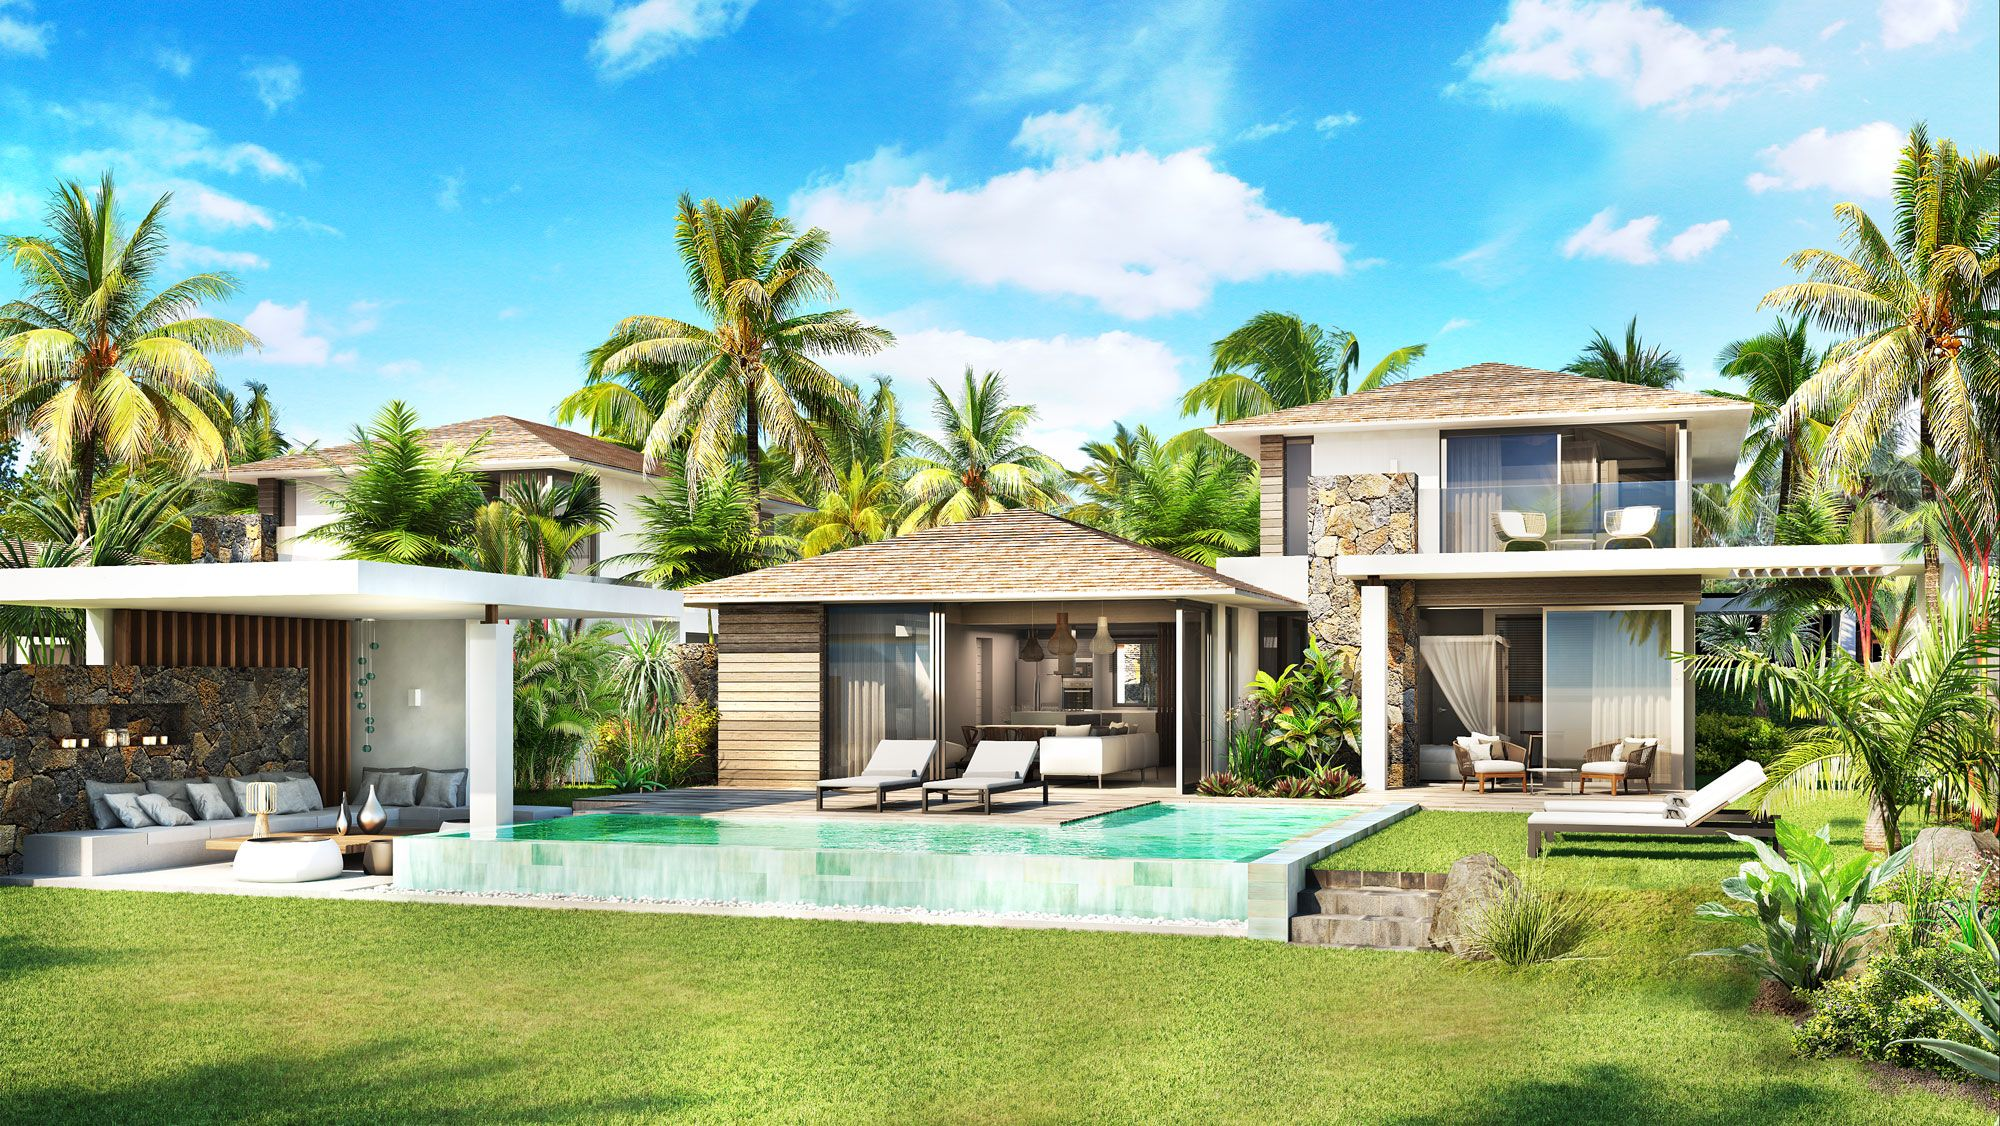 Riviera Villas In Mauritius Make This Lifestyle Yours Lexpress Property Villas In Mauritius House Villa